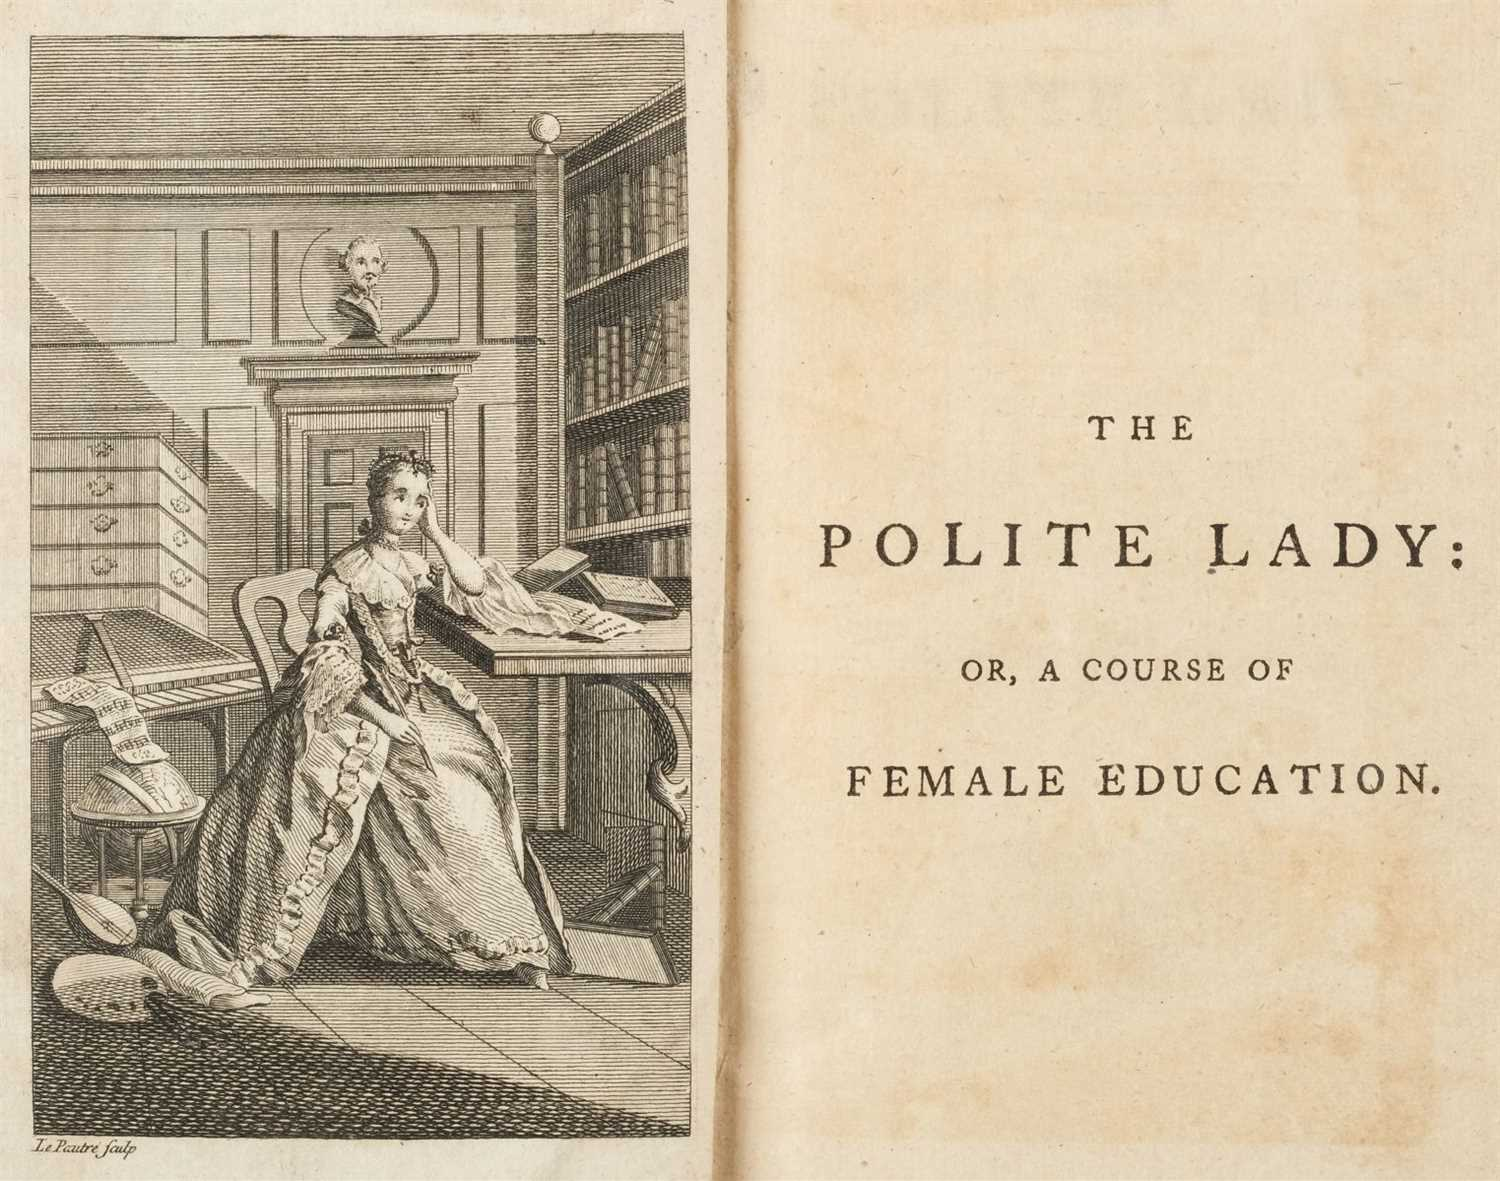 Lot 231 - Allen (Charles). The Polite Lady: or, a Course of Female Education, 1st edition, 1760